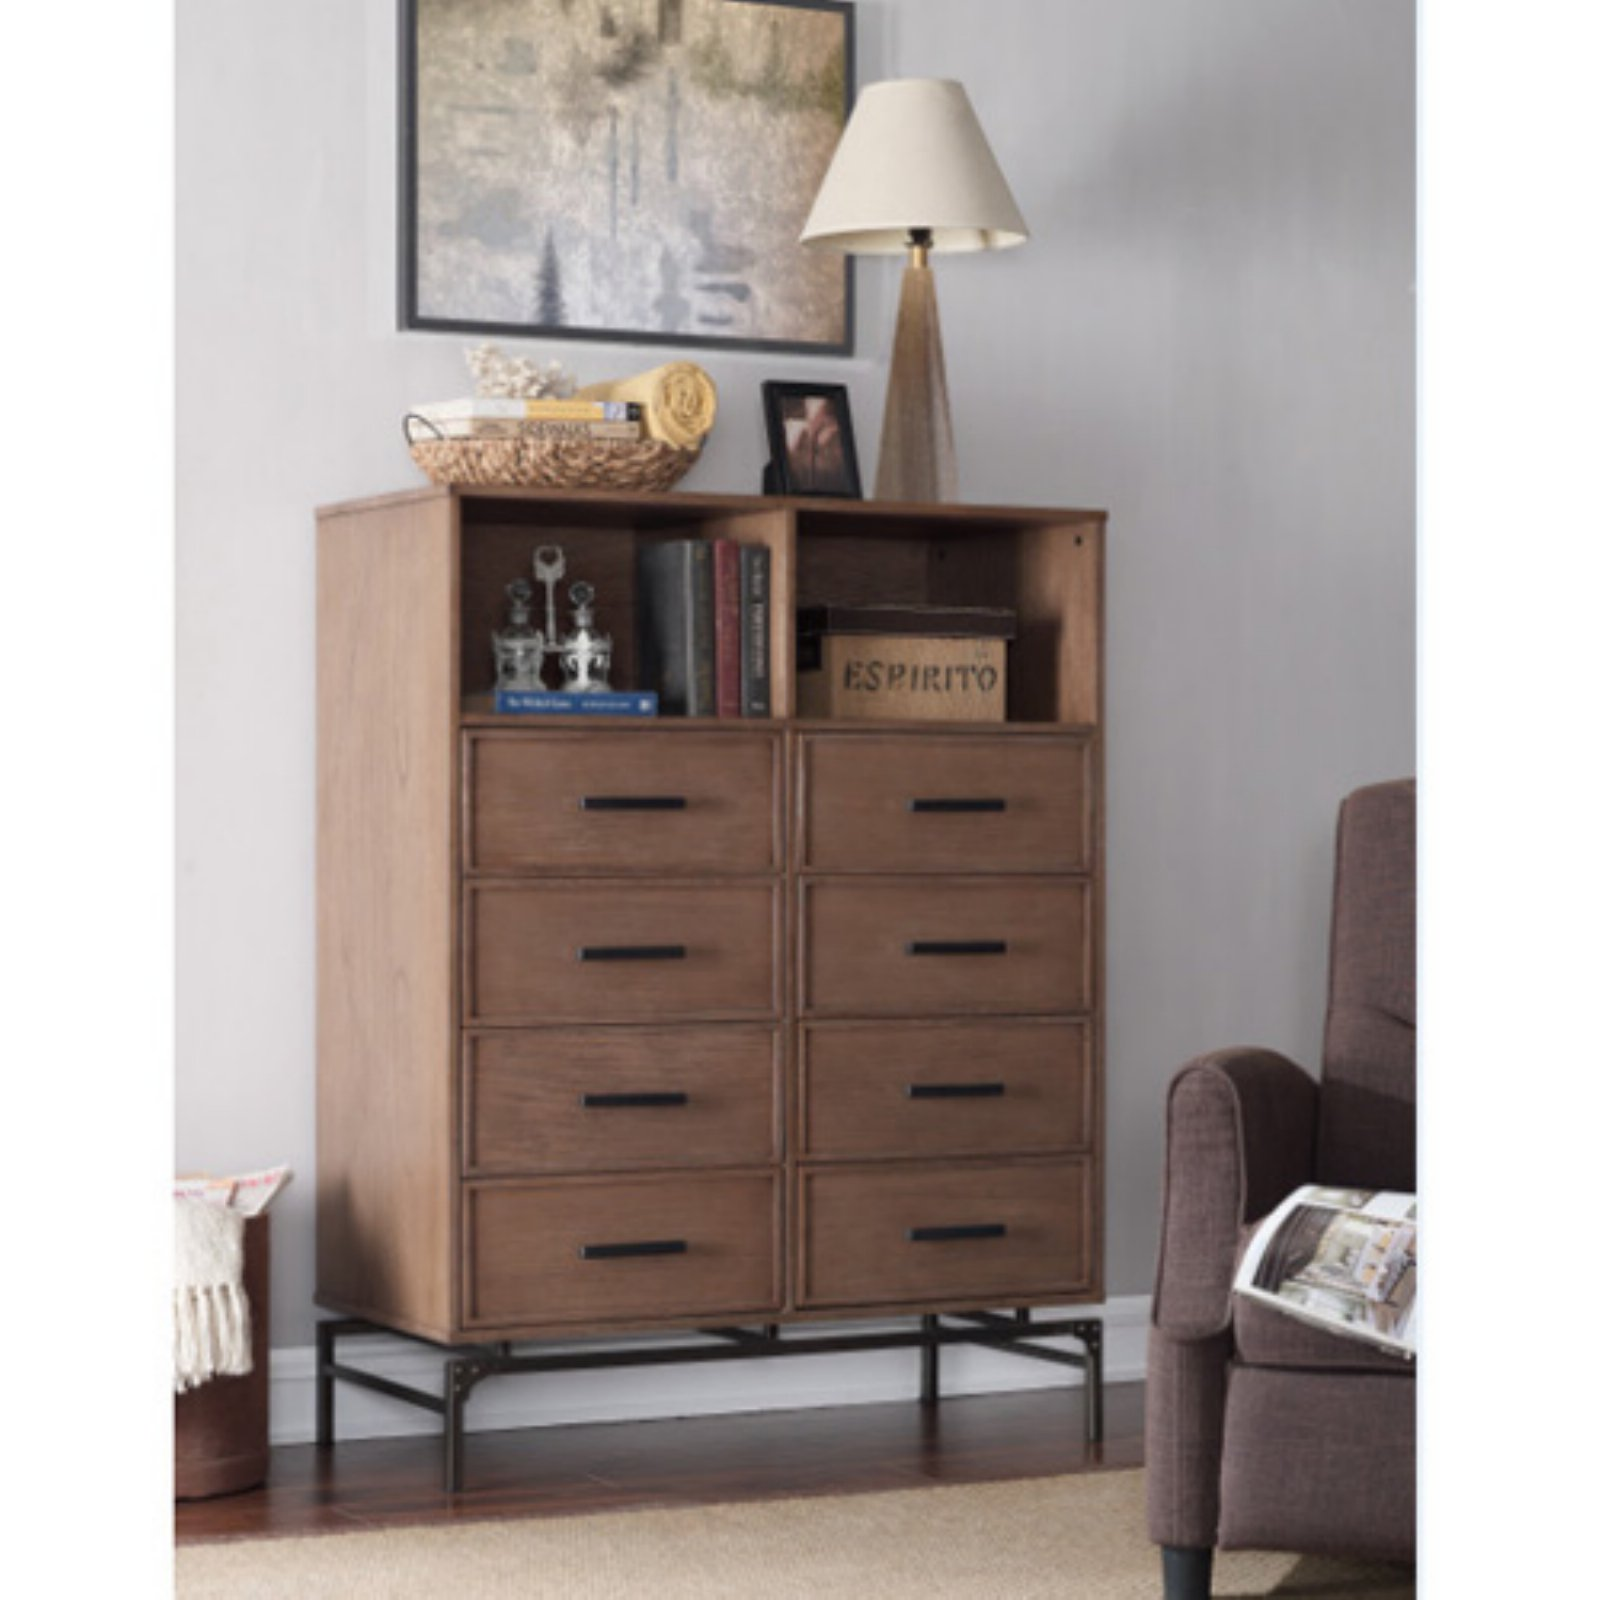 Runfine Desa 8 Drawer Dresser